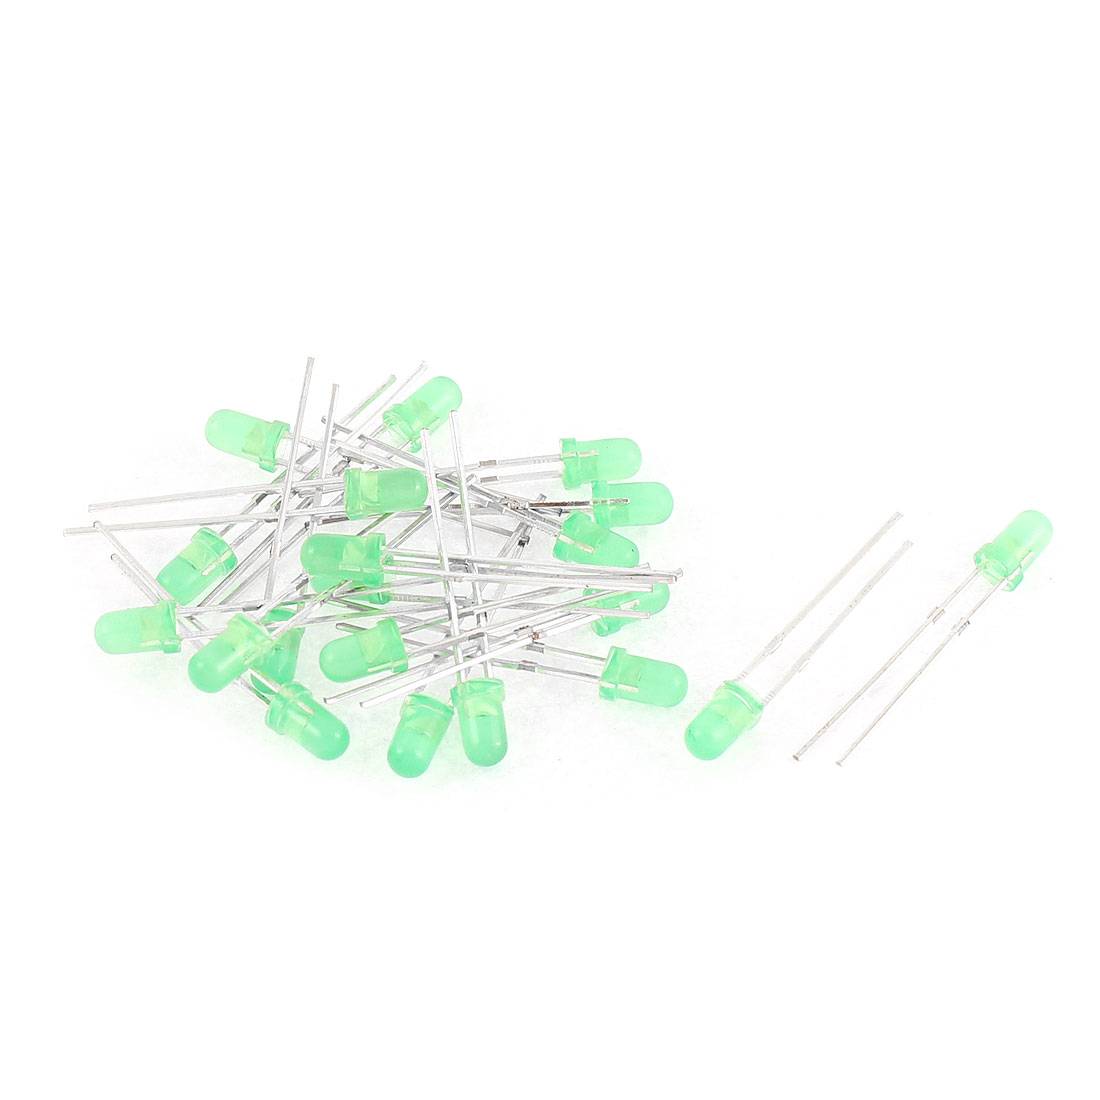 20pcs 3mm Bright Green Color Lights Round LED Emitting Diode Lamp Component